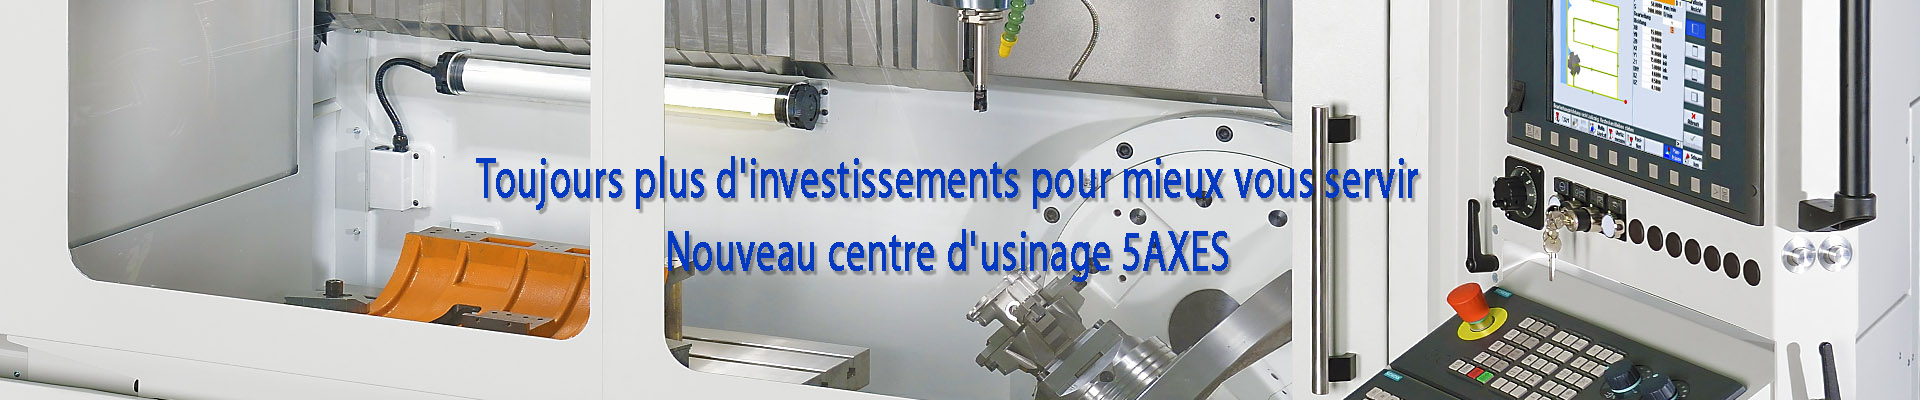 nouveau centre d'usinage 5 axes sermab 21